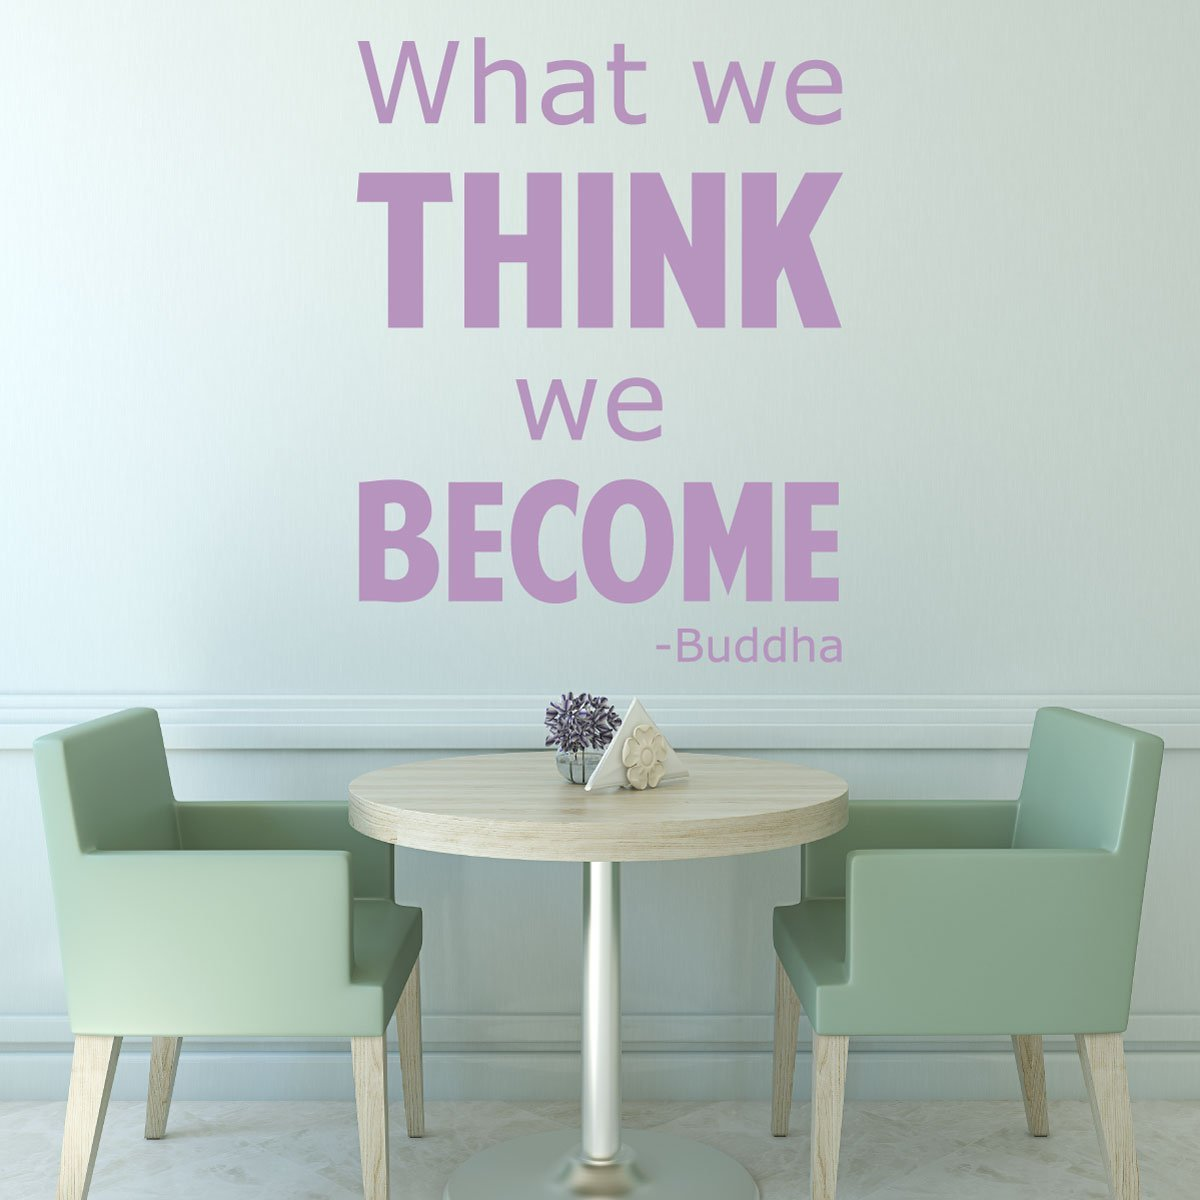 Quote Wall Decals - What We Think We Become - Buddha